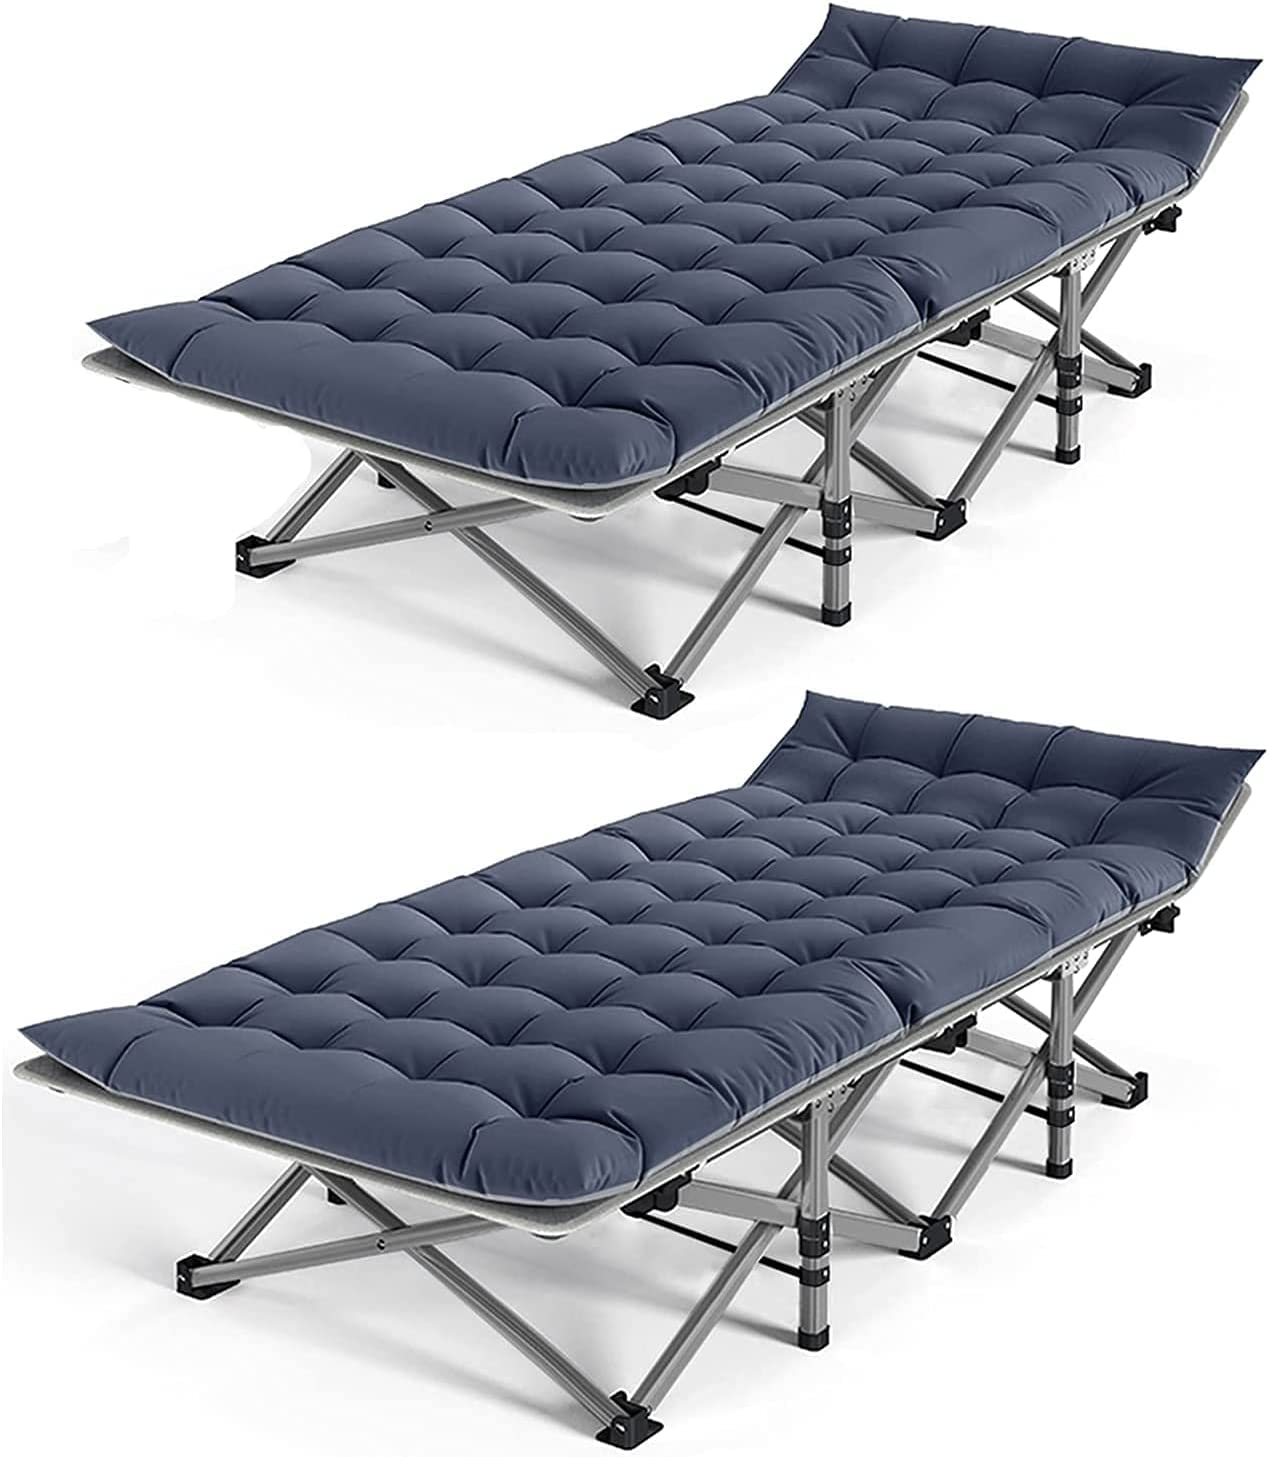 NAIZEA Folding Camping Bed 5 ☆ very popular Cots for L Heavy Adults Duty Max 61% OFF